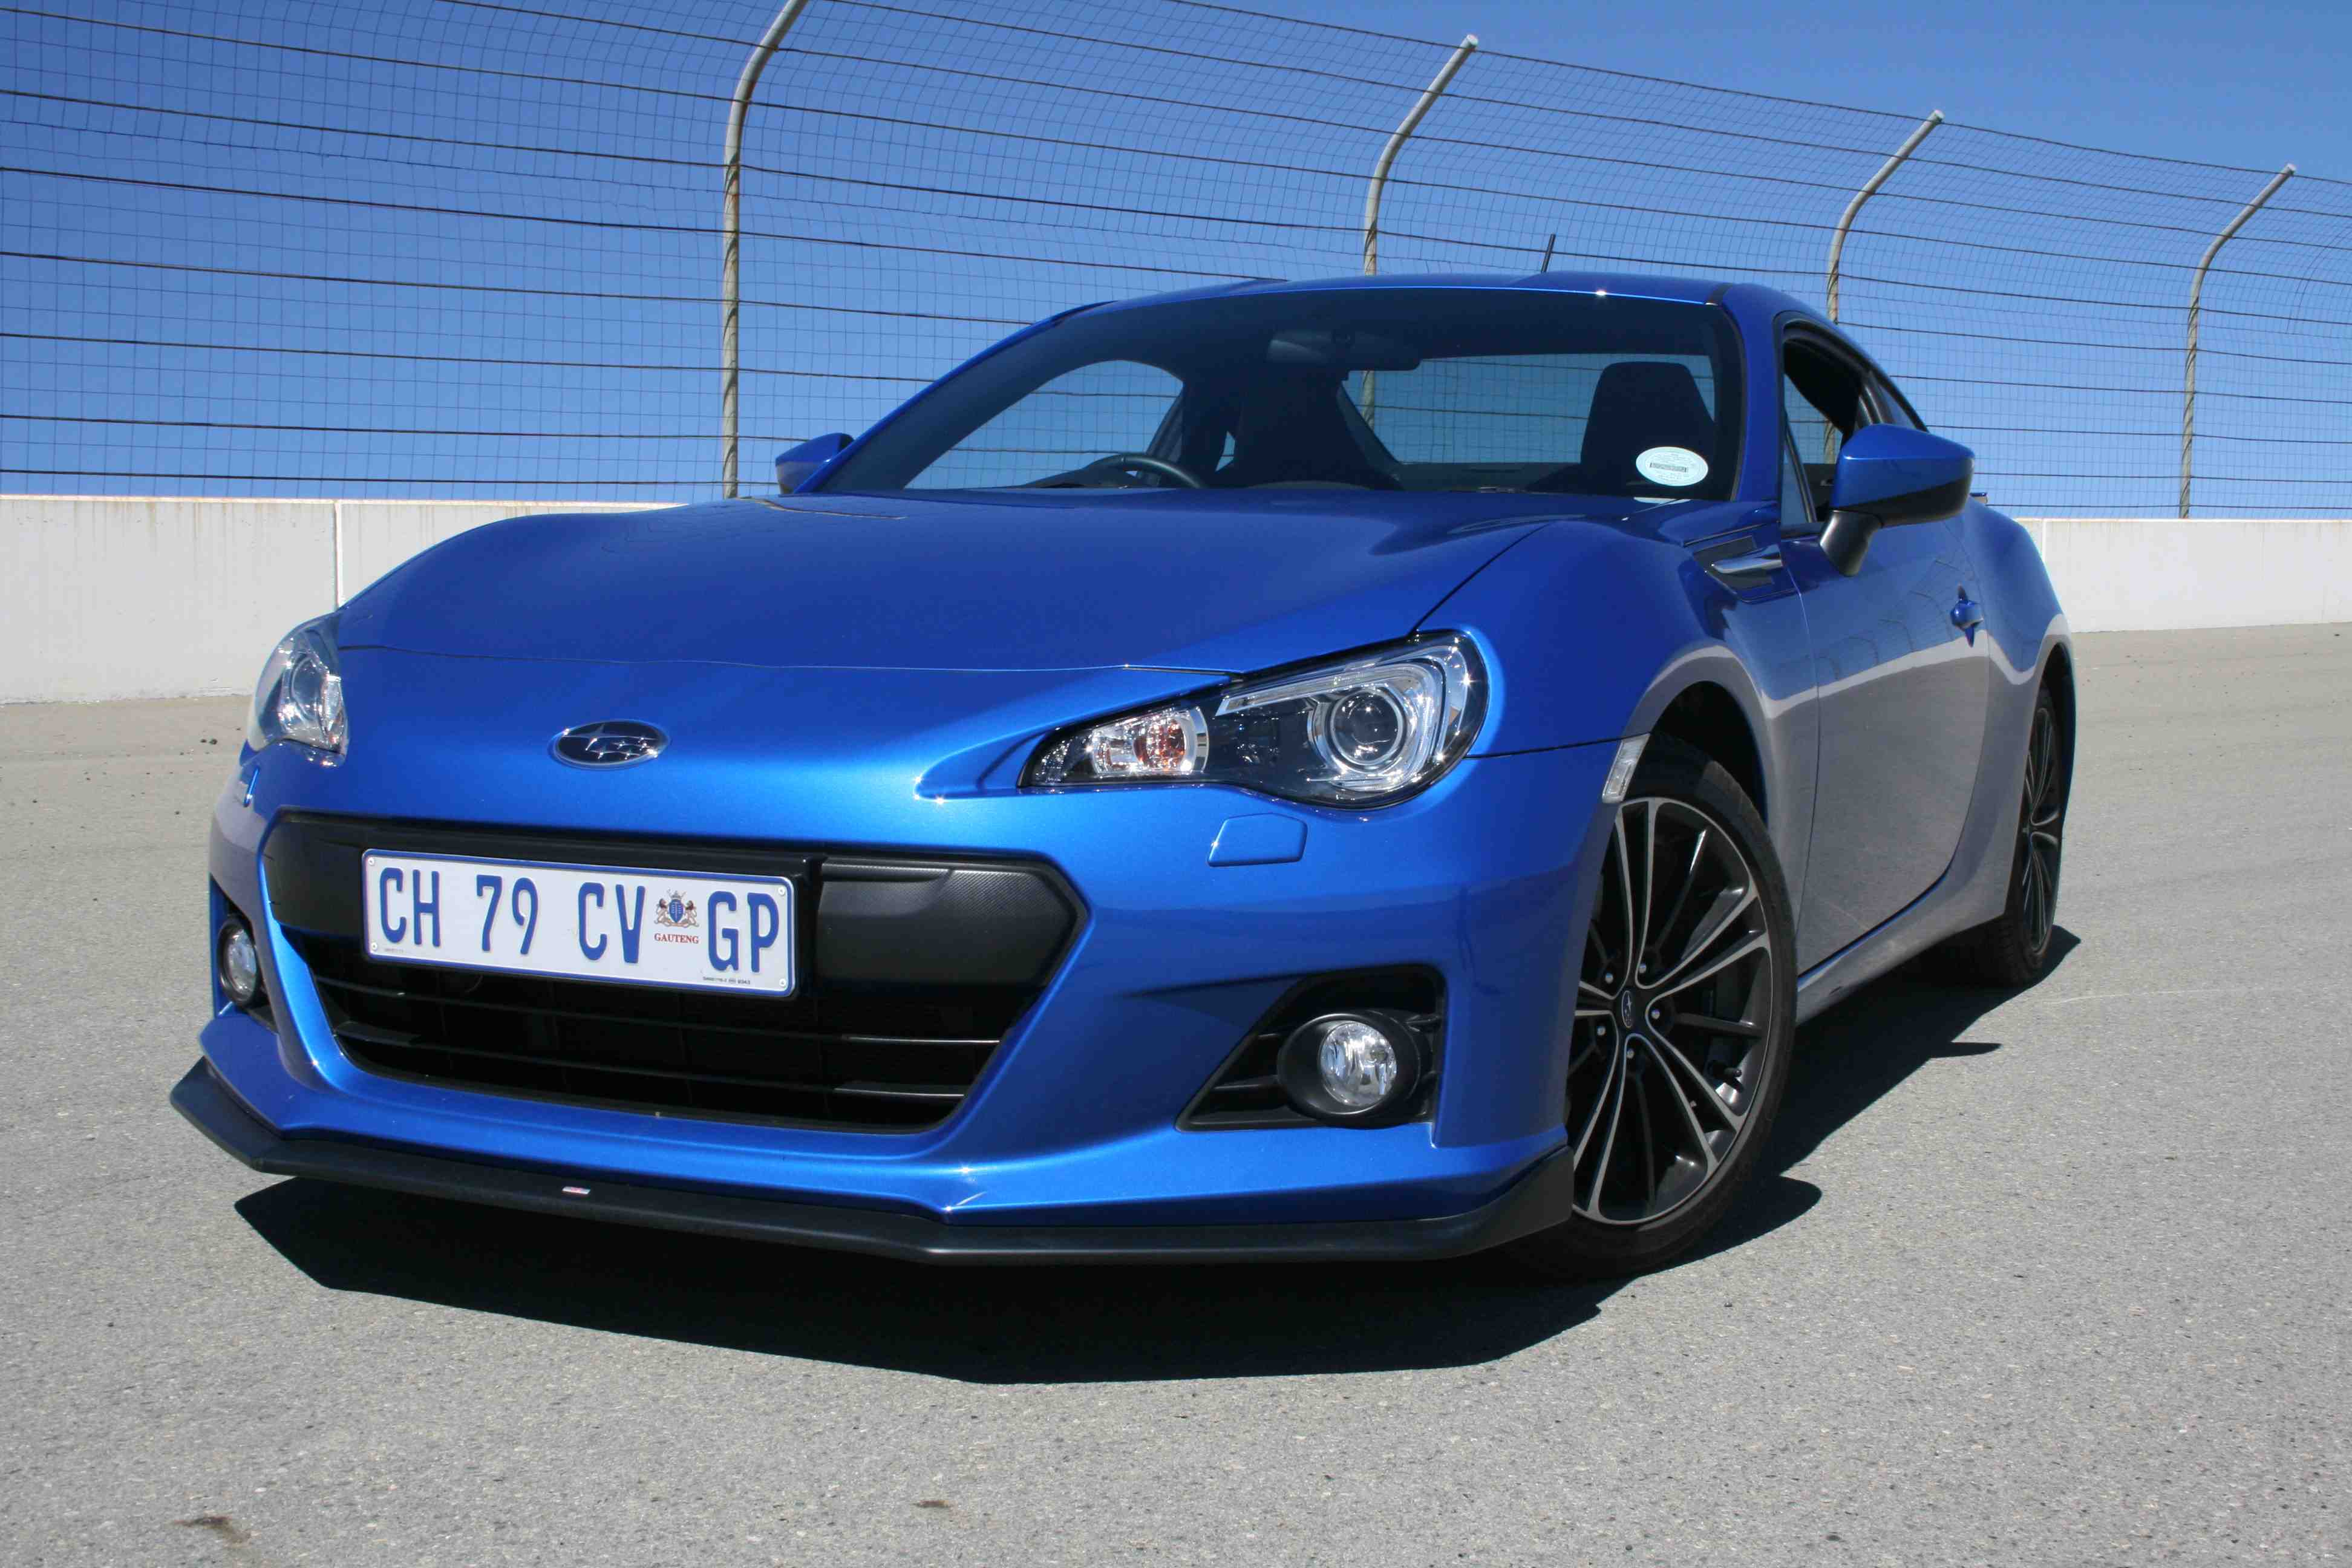 Review: 2013 Subaru BRZ